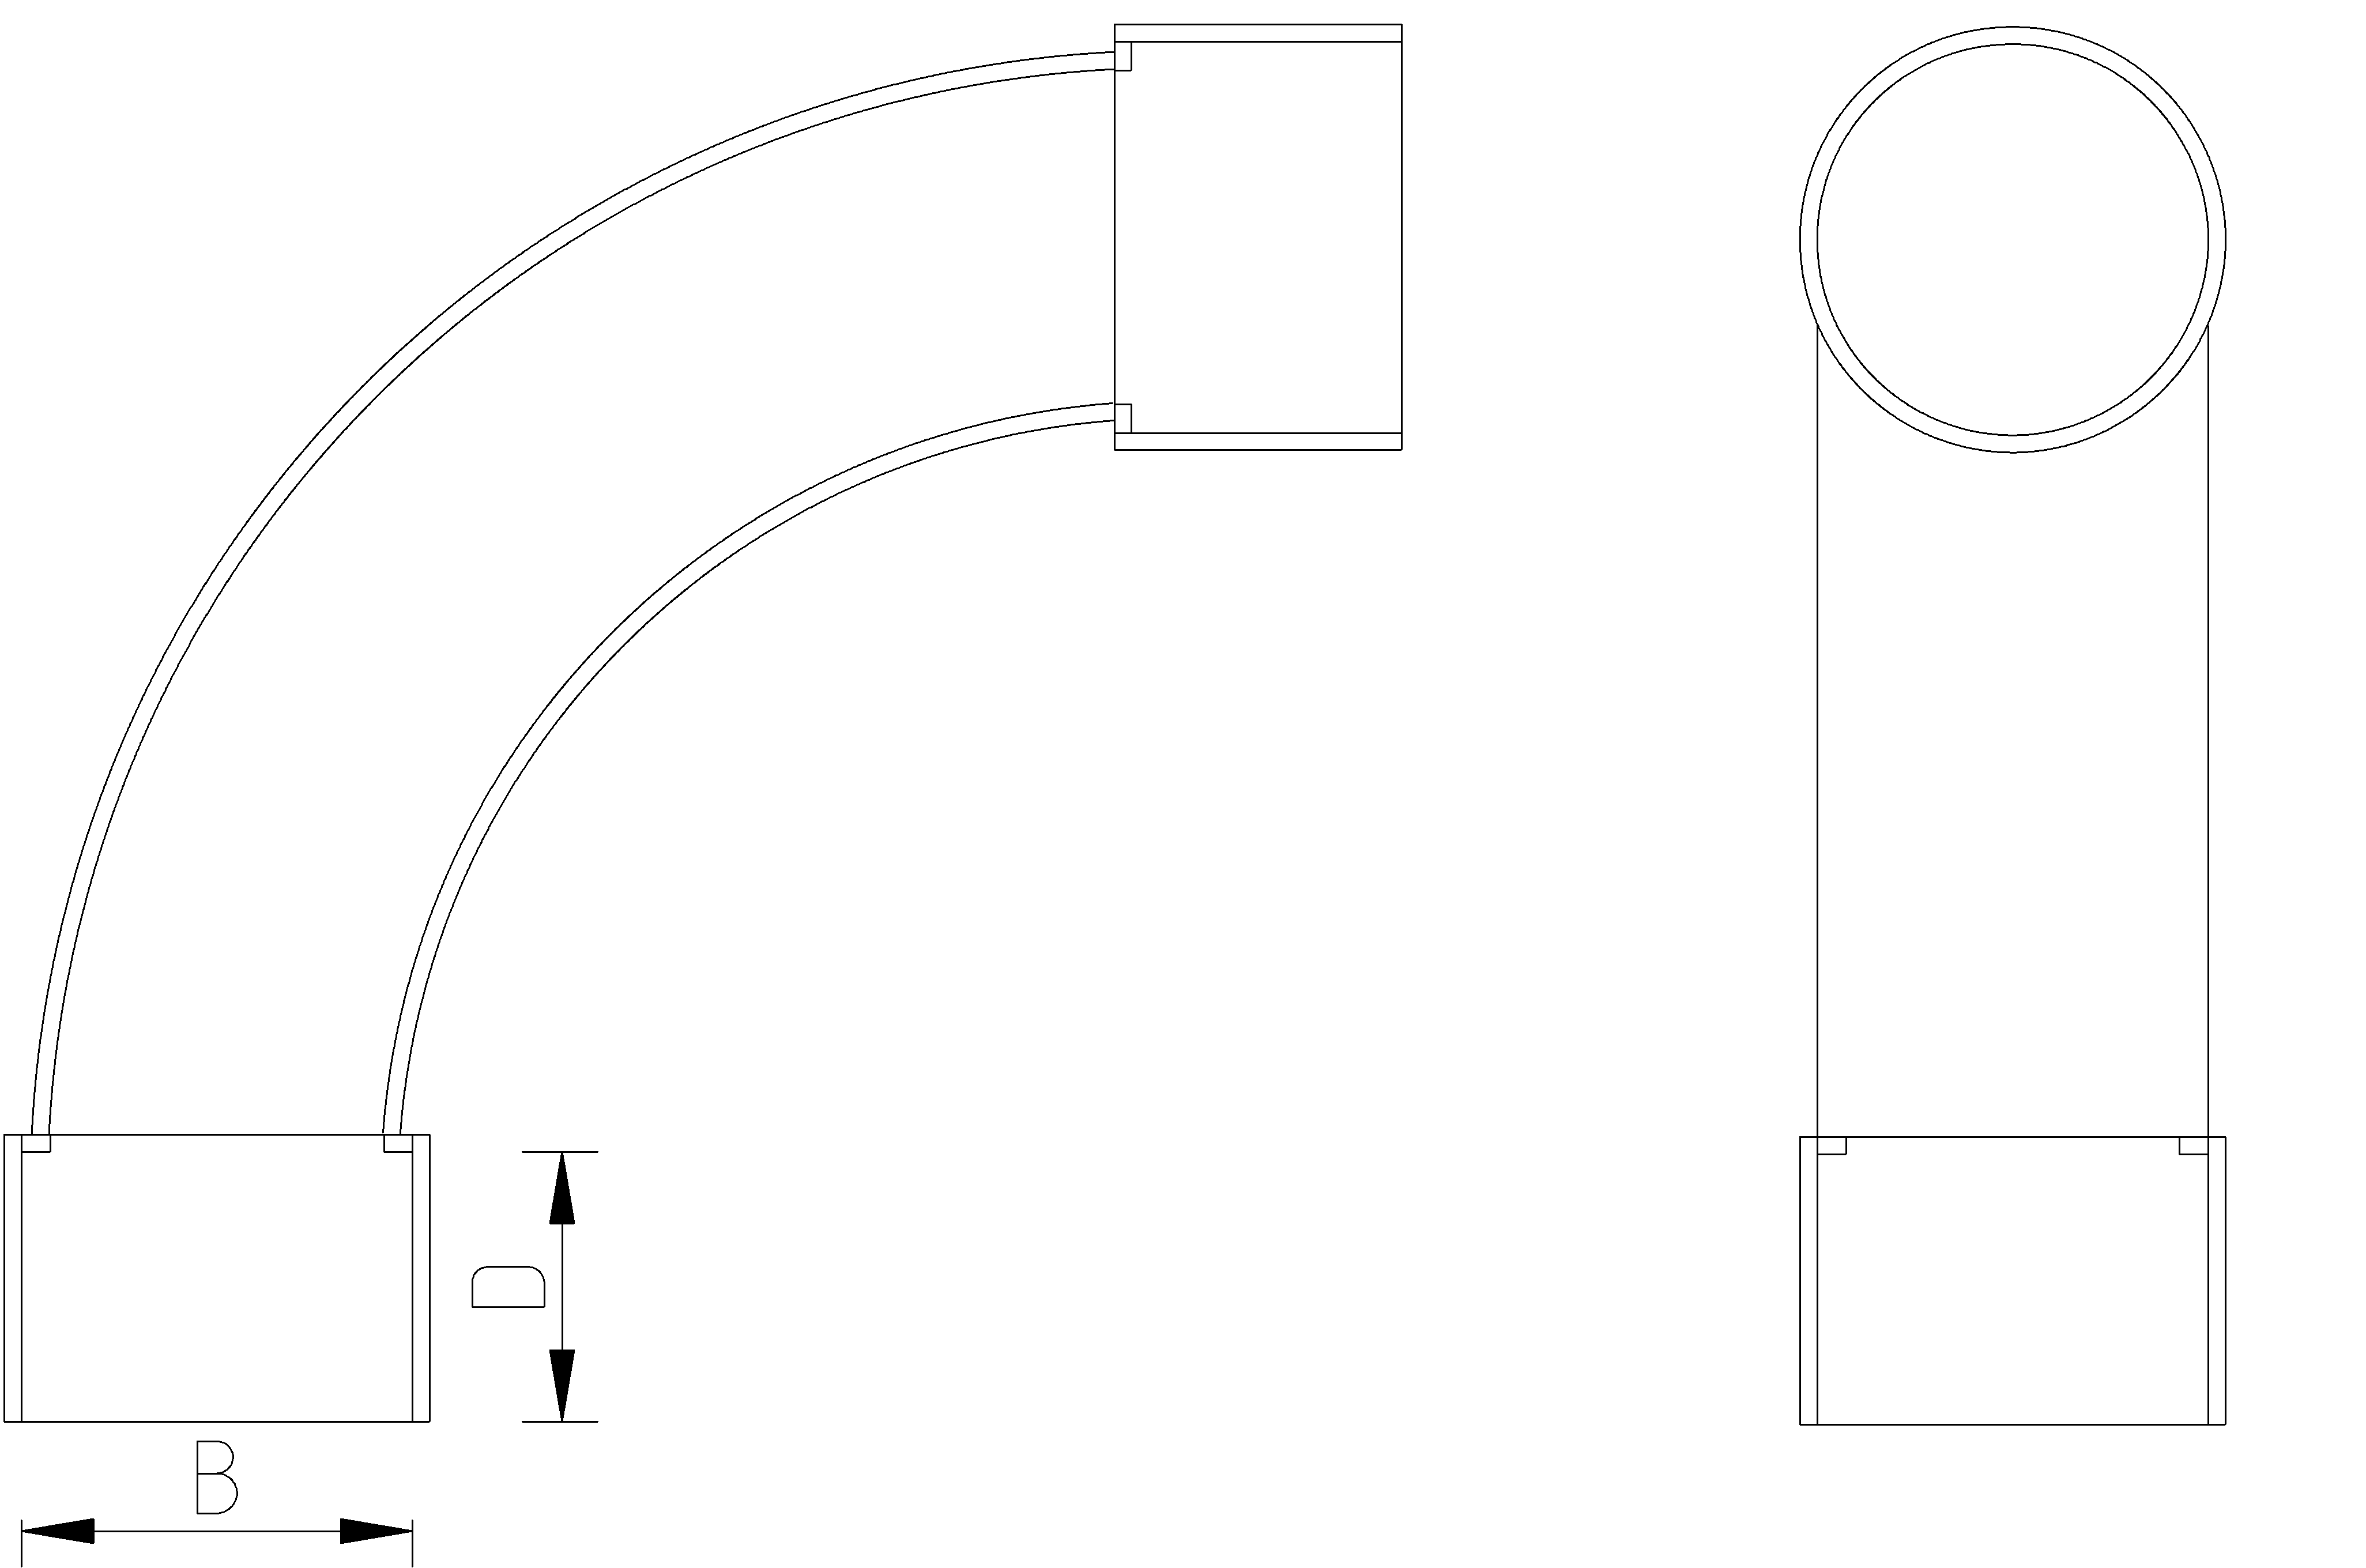 20mm 90 Bend Dimensions Drawing